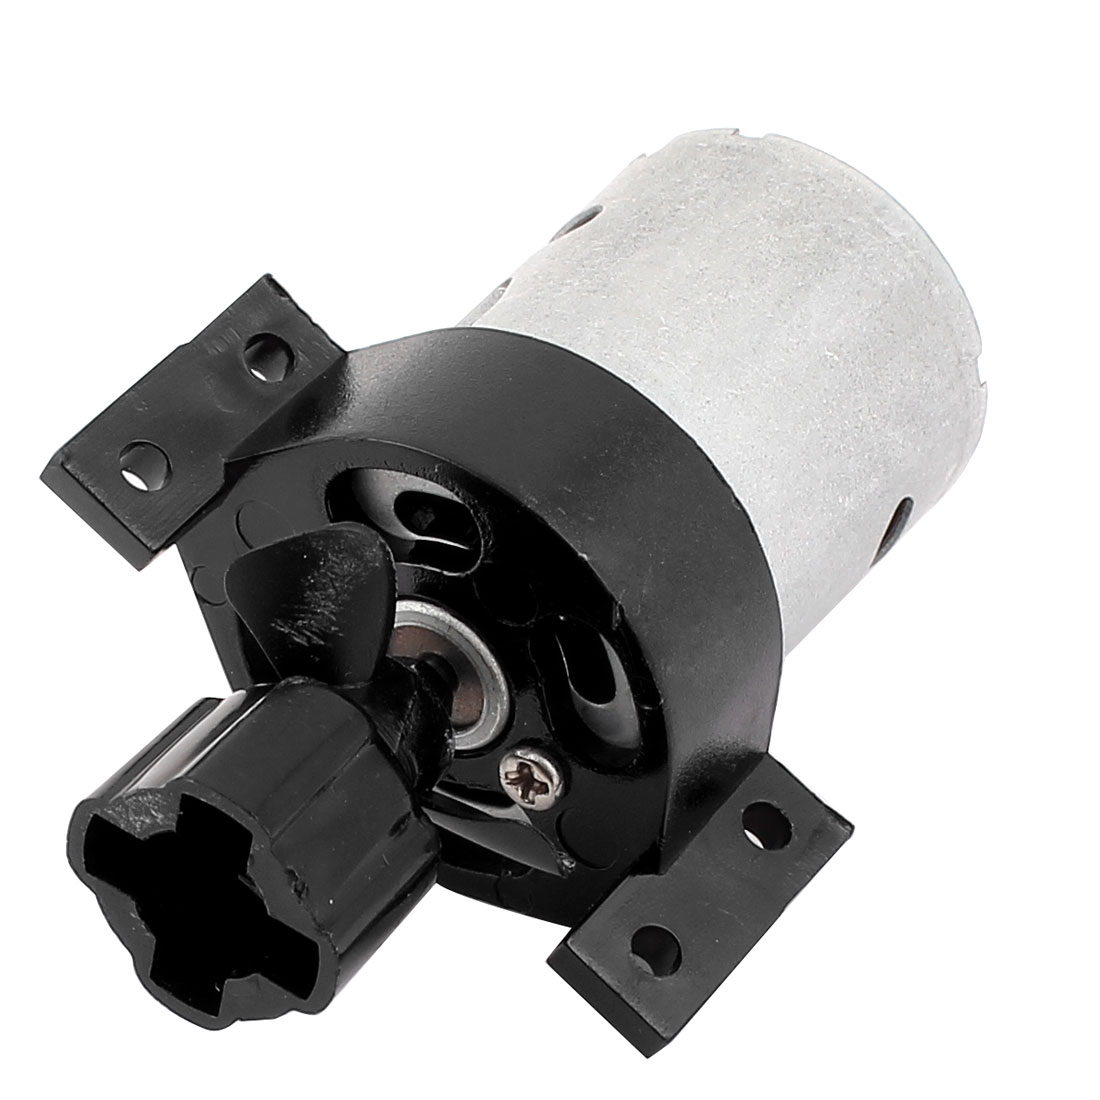 DC 7.4V 31800 RPM 2.3mm Shaft Electric Mini Motor for Double Horse 7000 7002 7004 7008 RC Plane